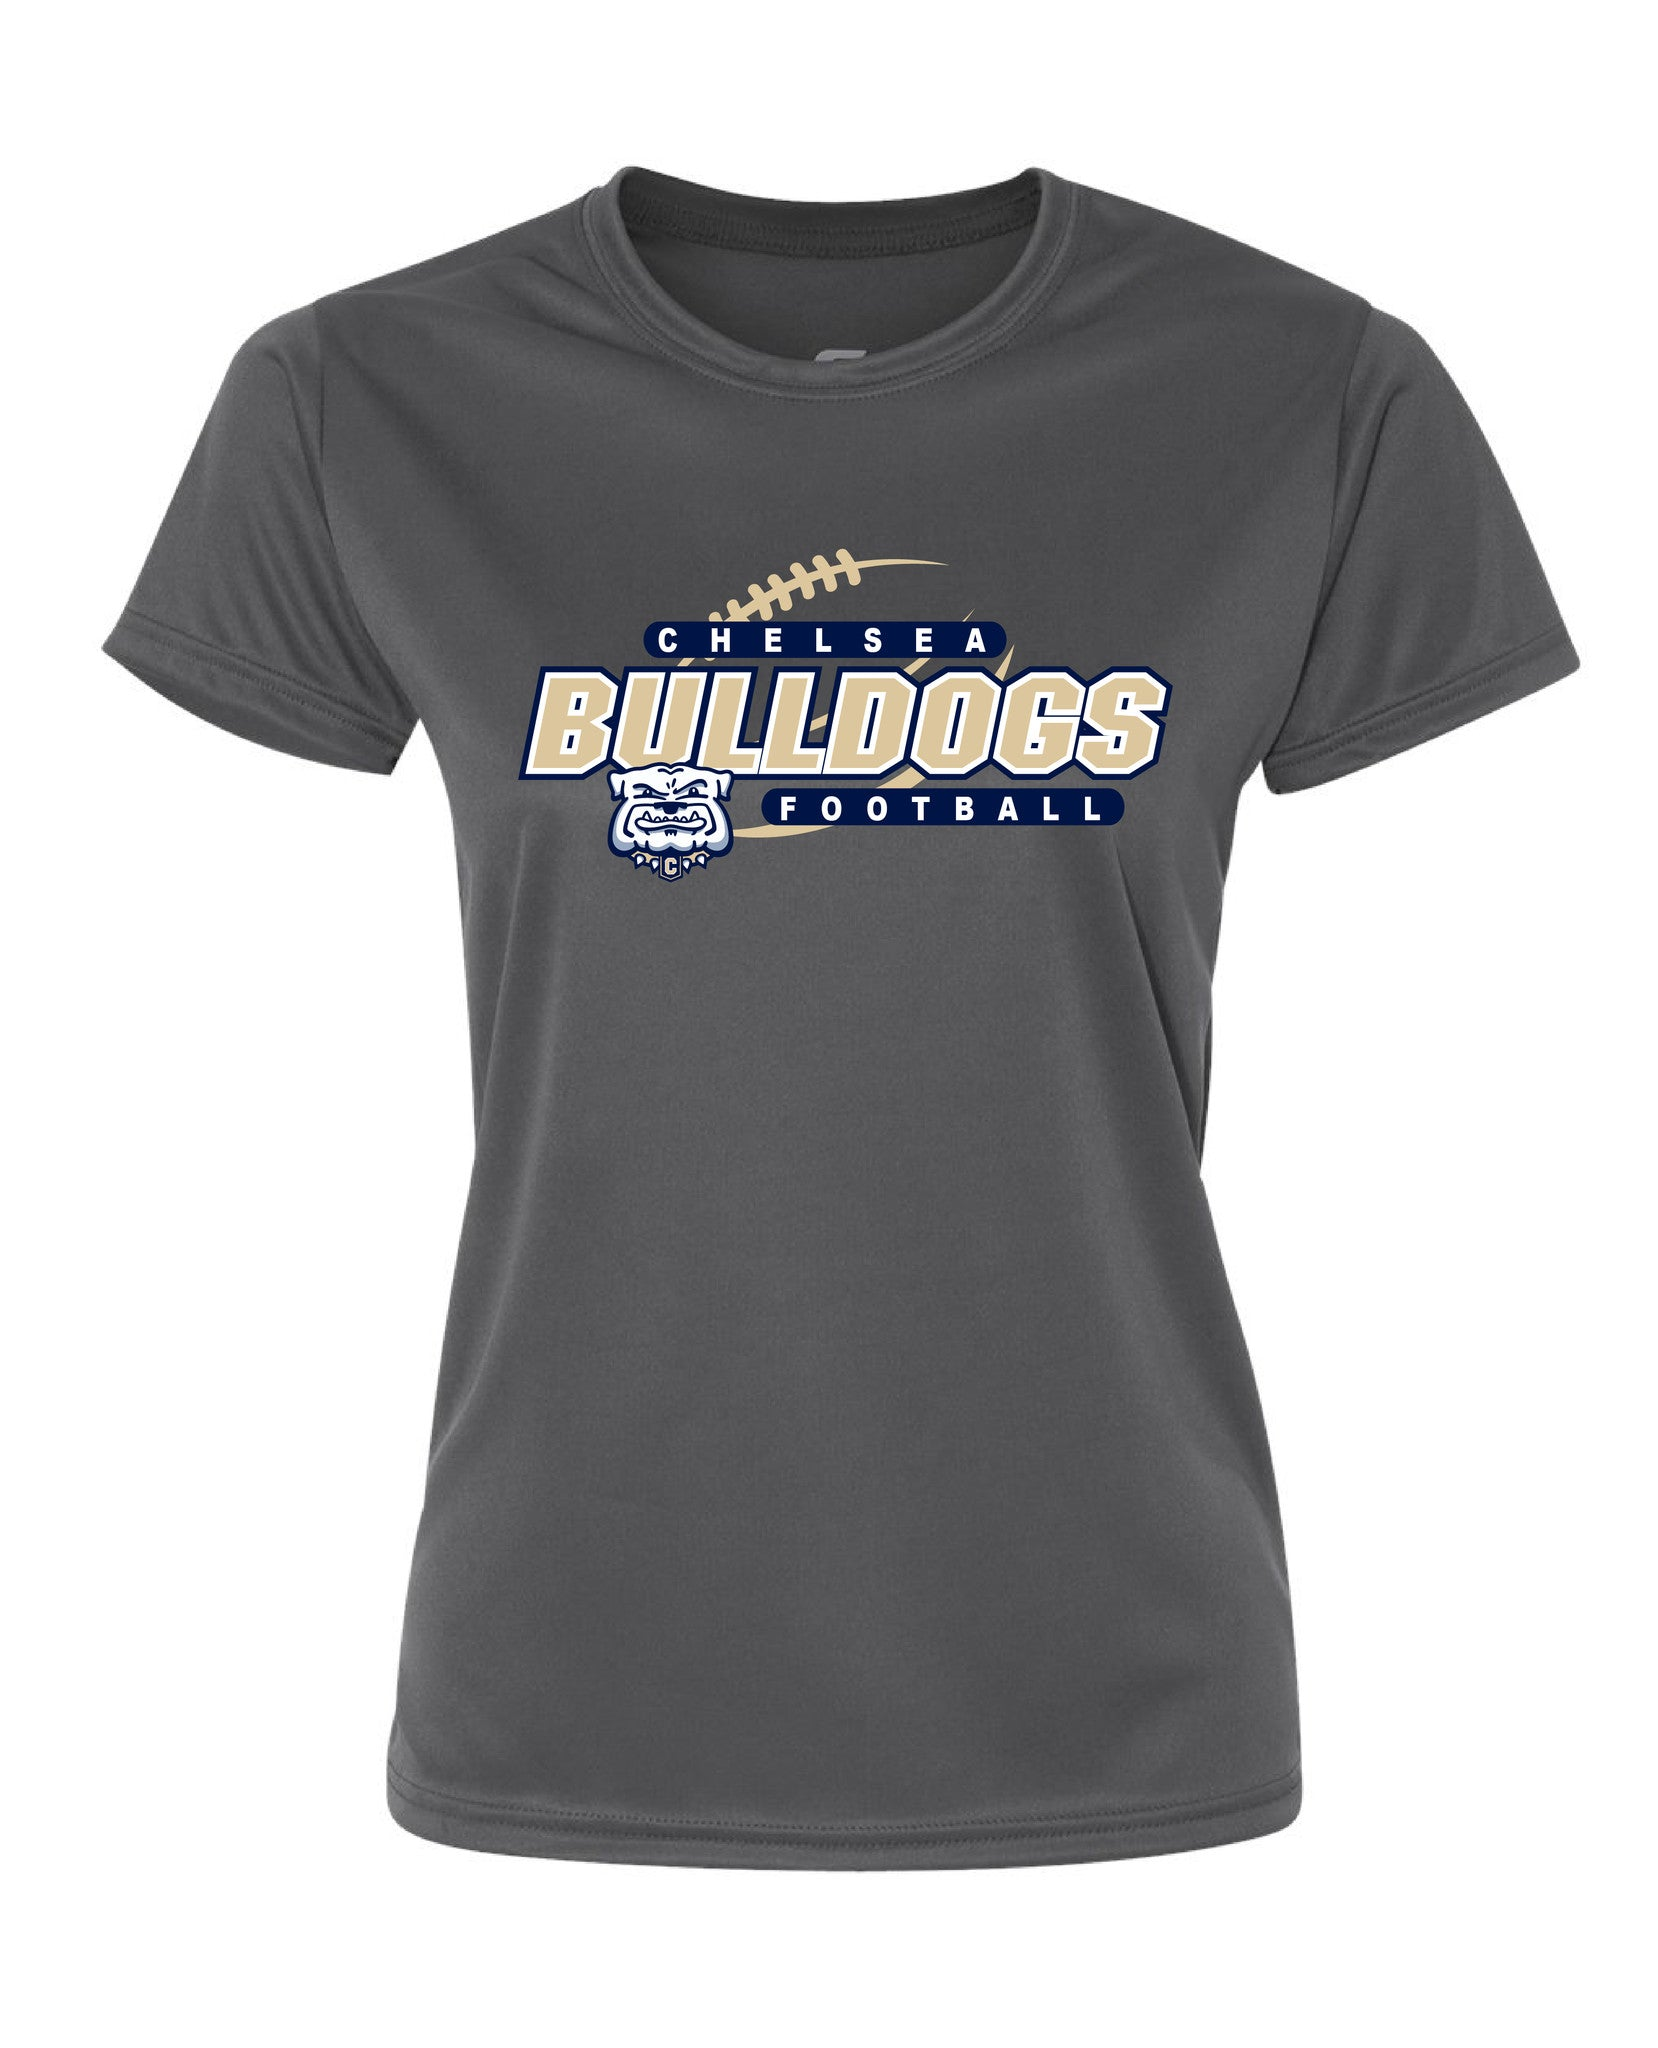 Ladies Chelsea Football Performance Shirt - D0004